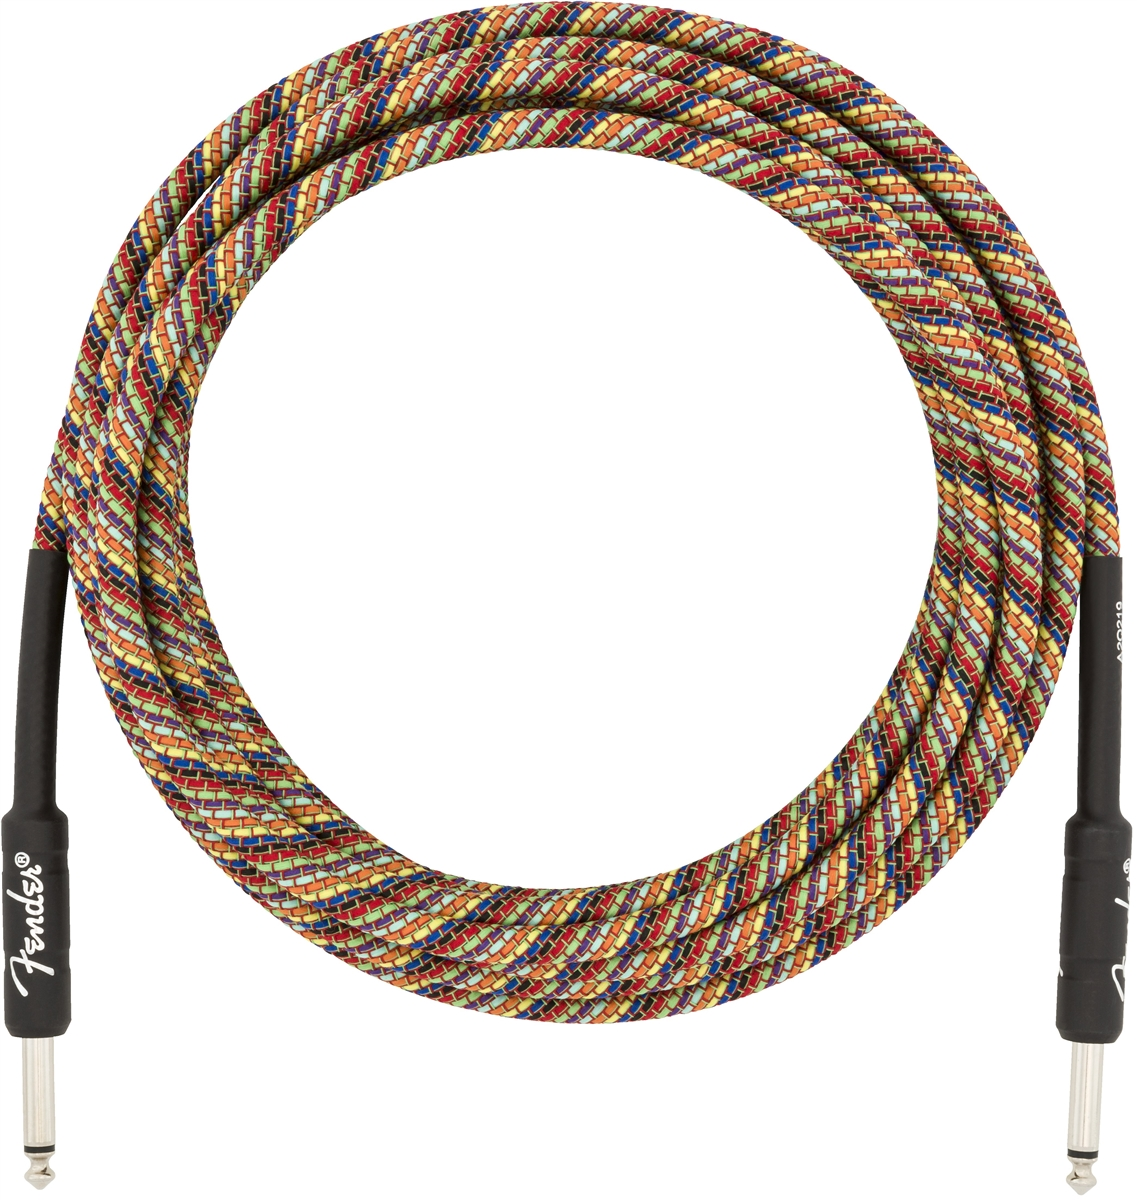 Festival Instrument Cable, Rainbow 18.6FT追加画像